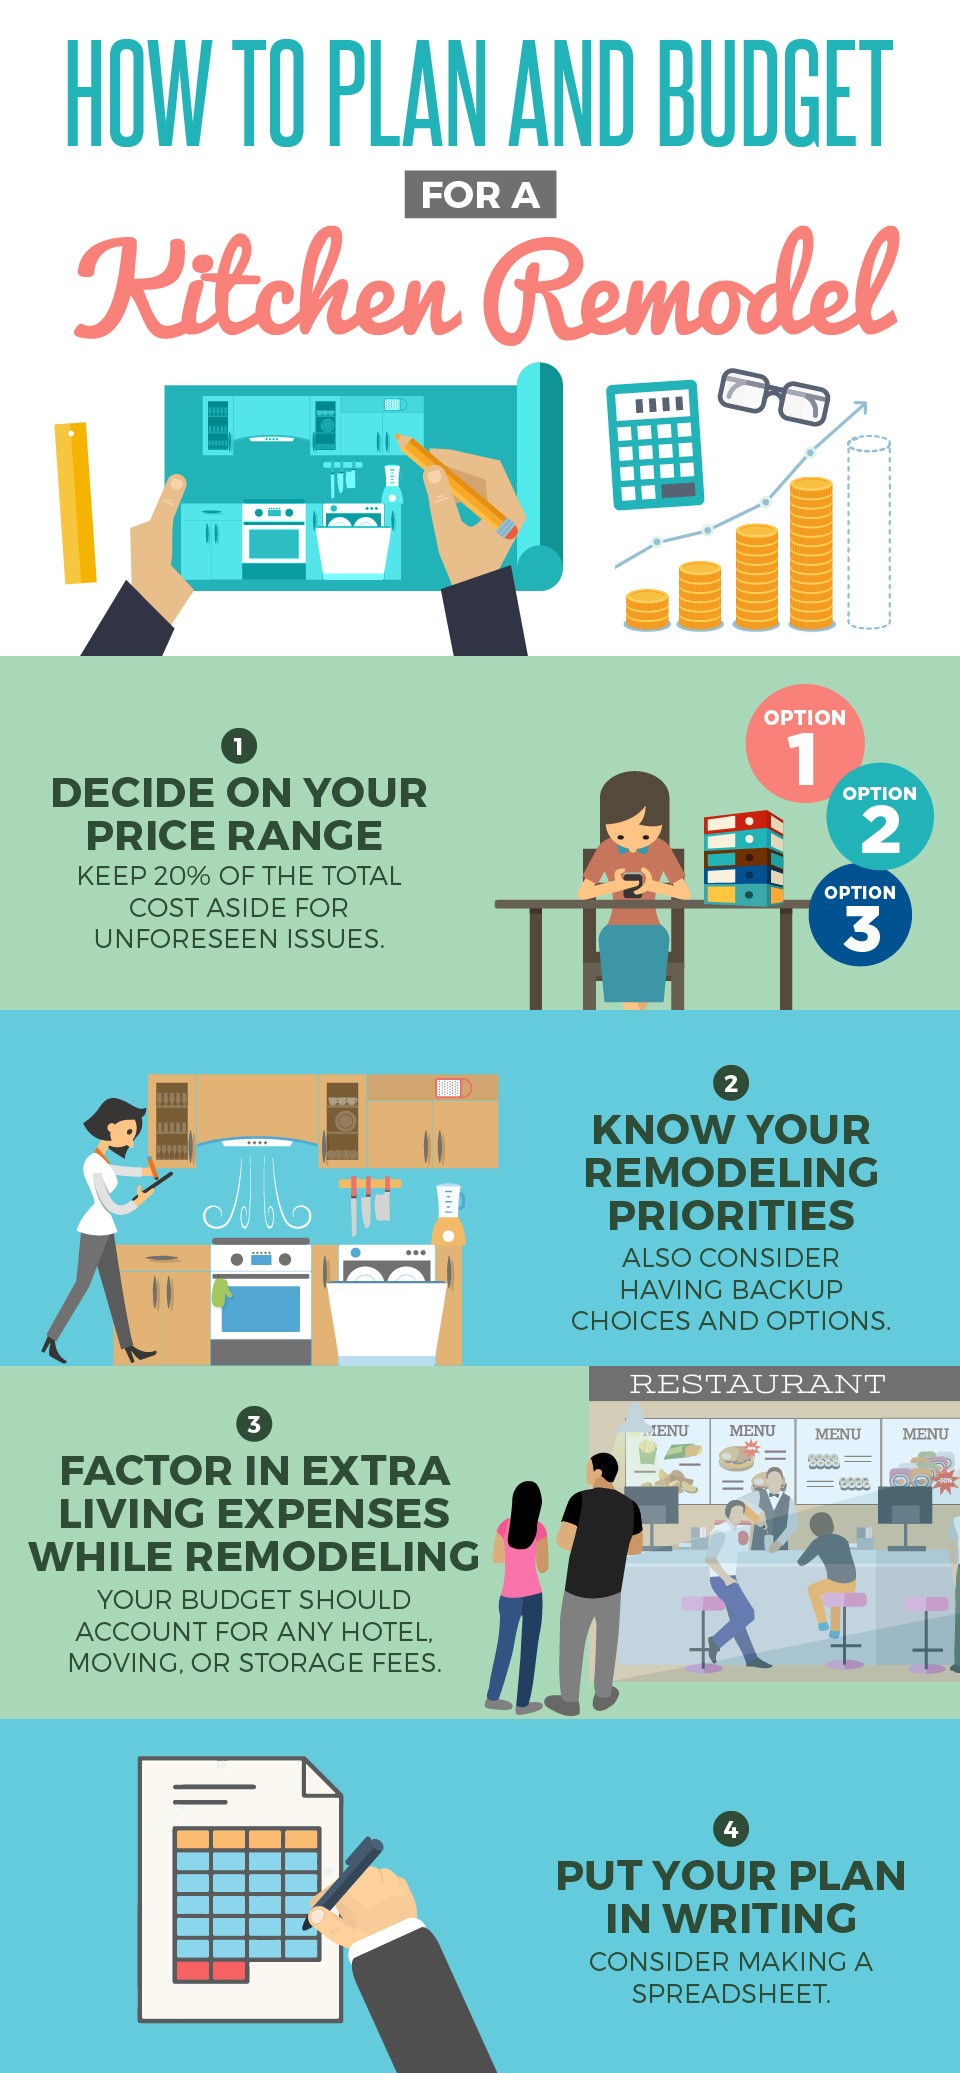 How to Plan and Budget for a Kitchen Remodel